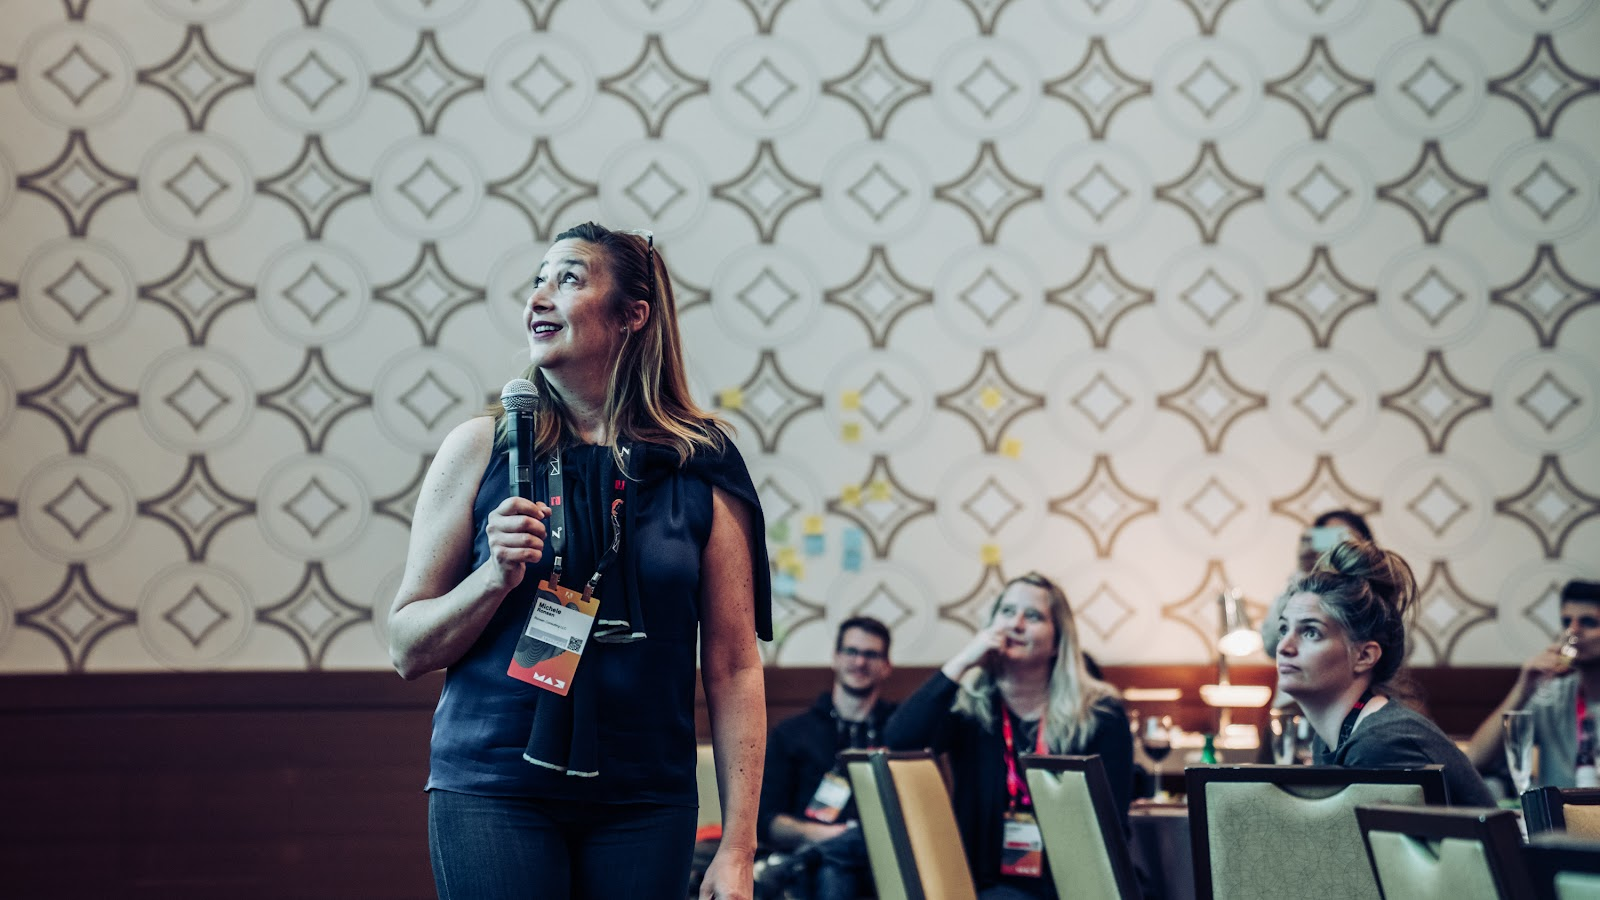 Michele Ronson, UX researcher and head of Ronson Consulting LLC, presents at XD Summit 2019.